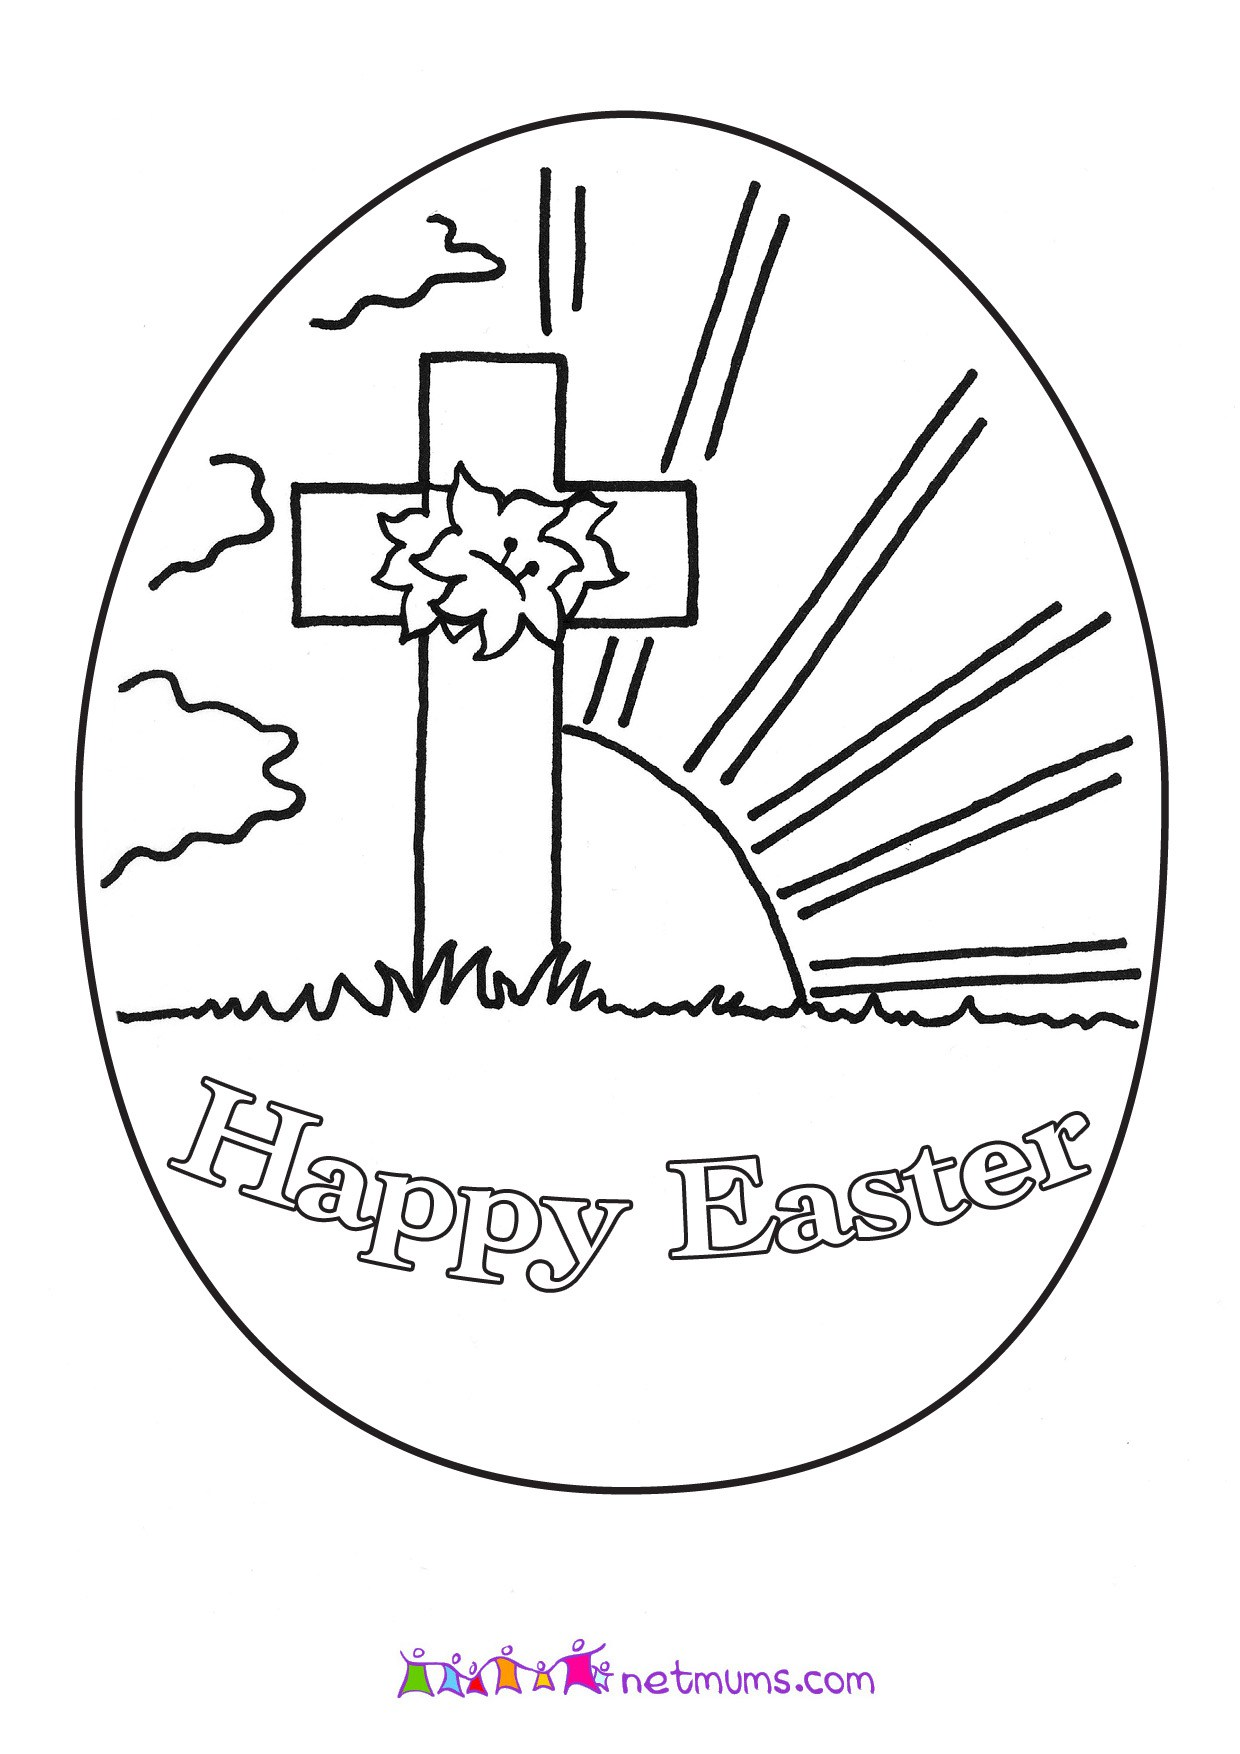 photo about Free Printable Easter Cards Religious known as Free of charge Christian Easter Coloring Internet pages at